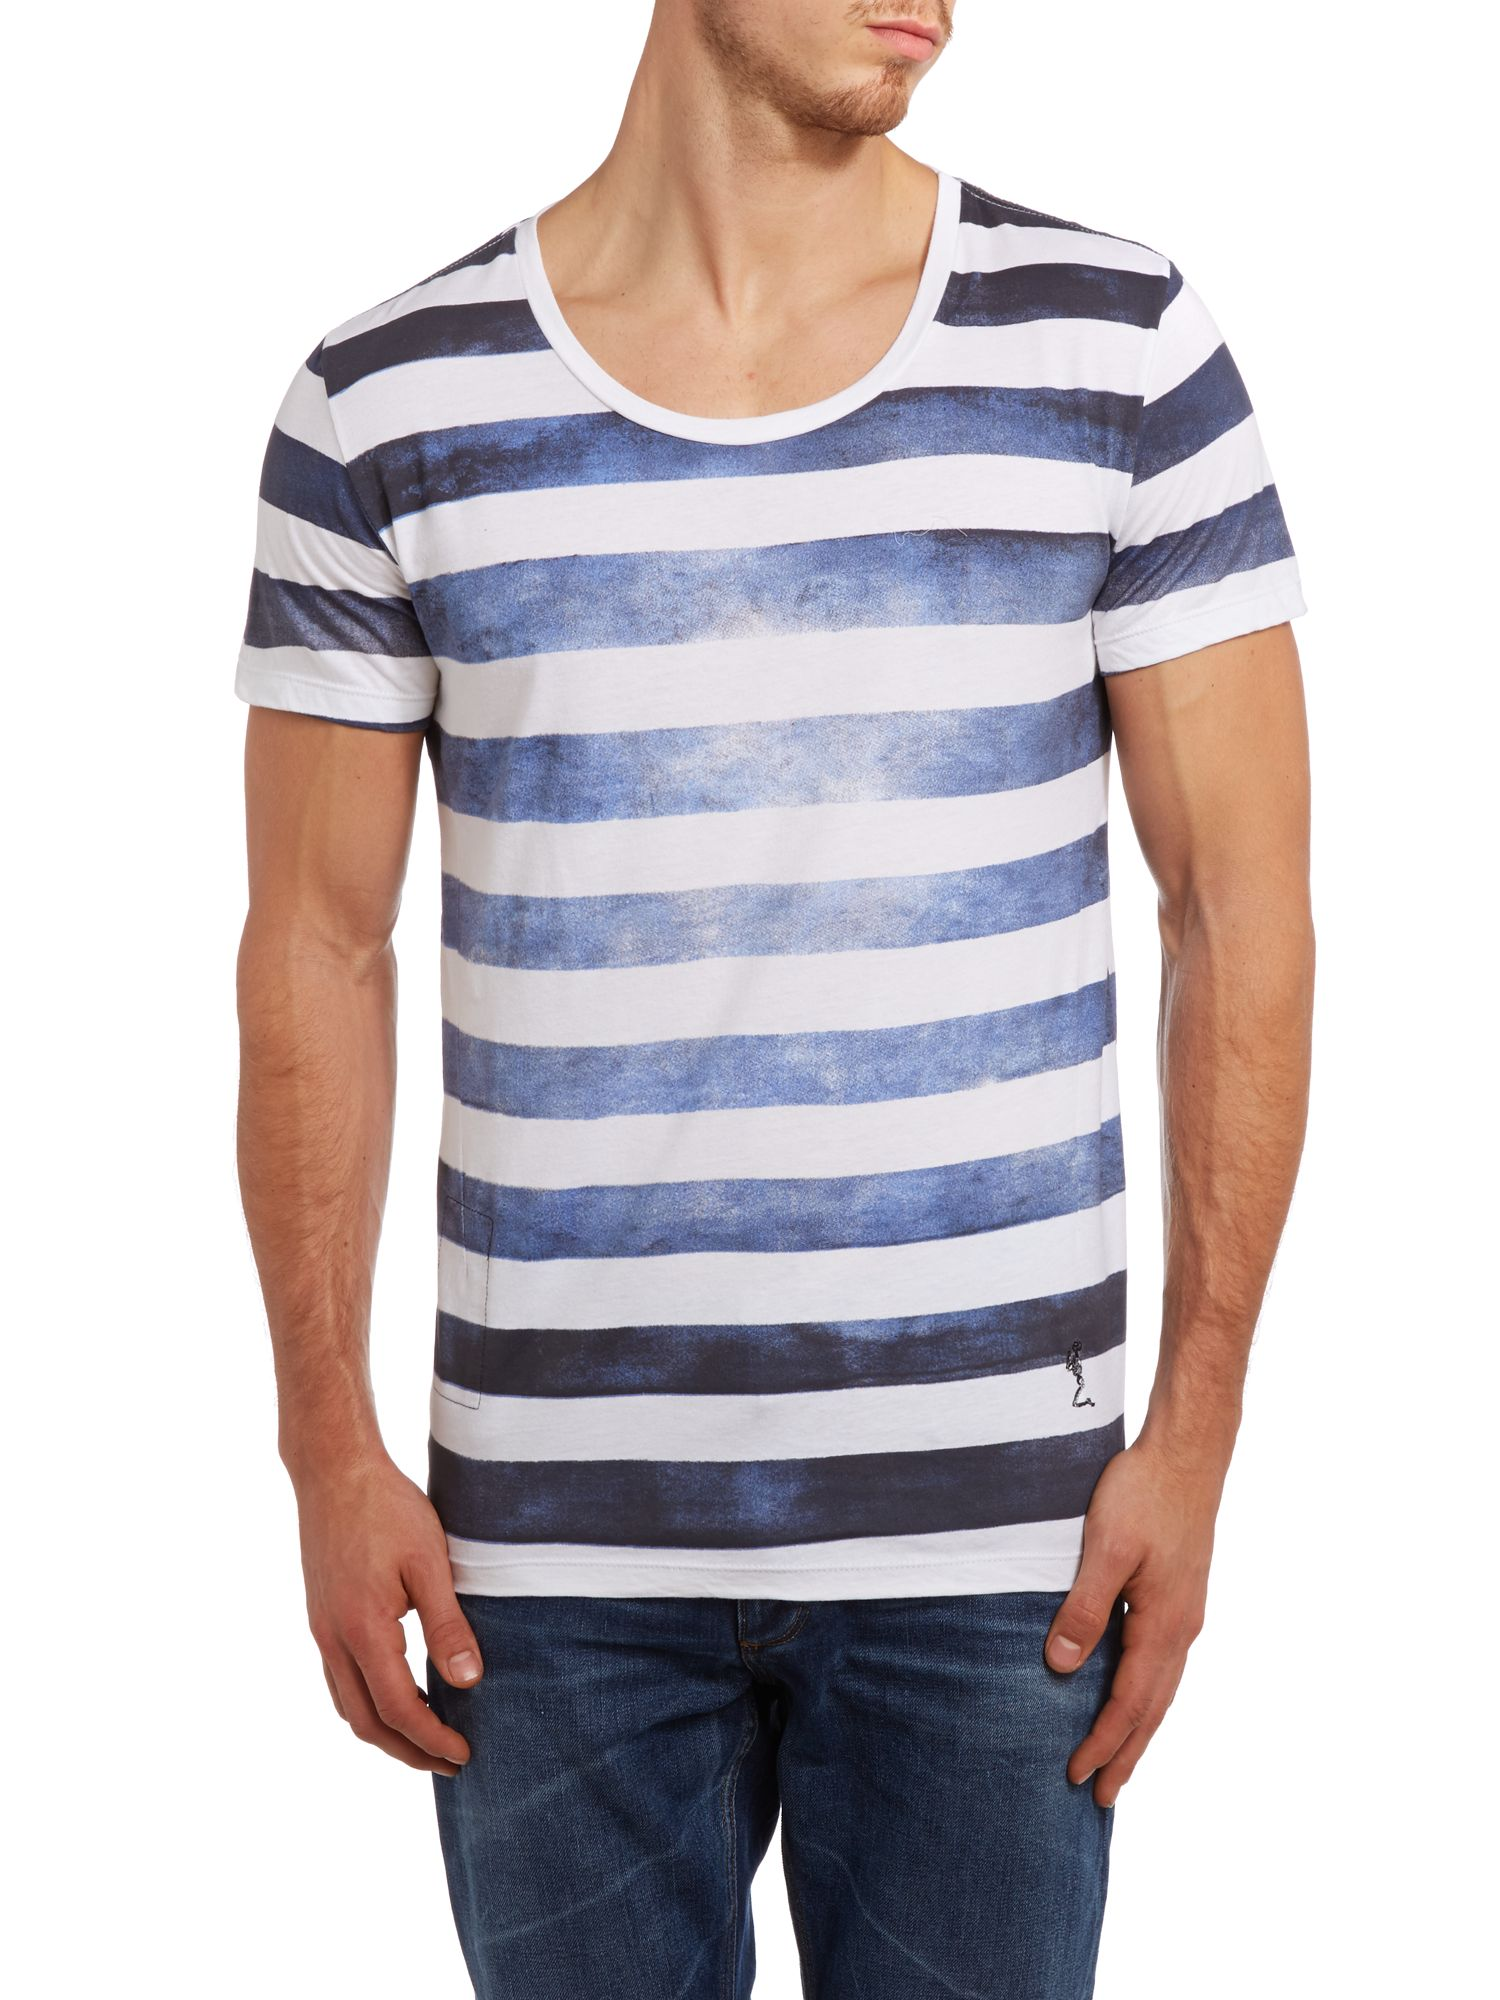 Painted stripes printed t shirt